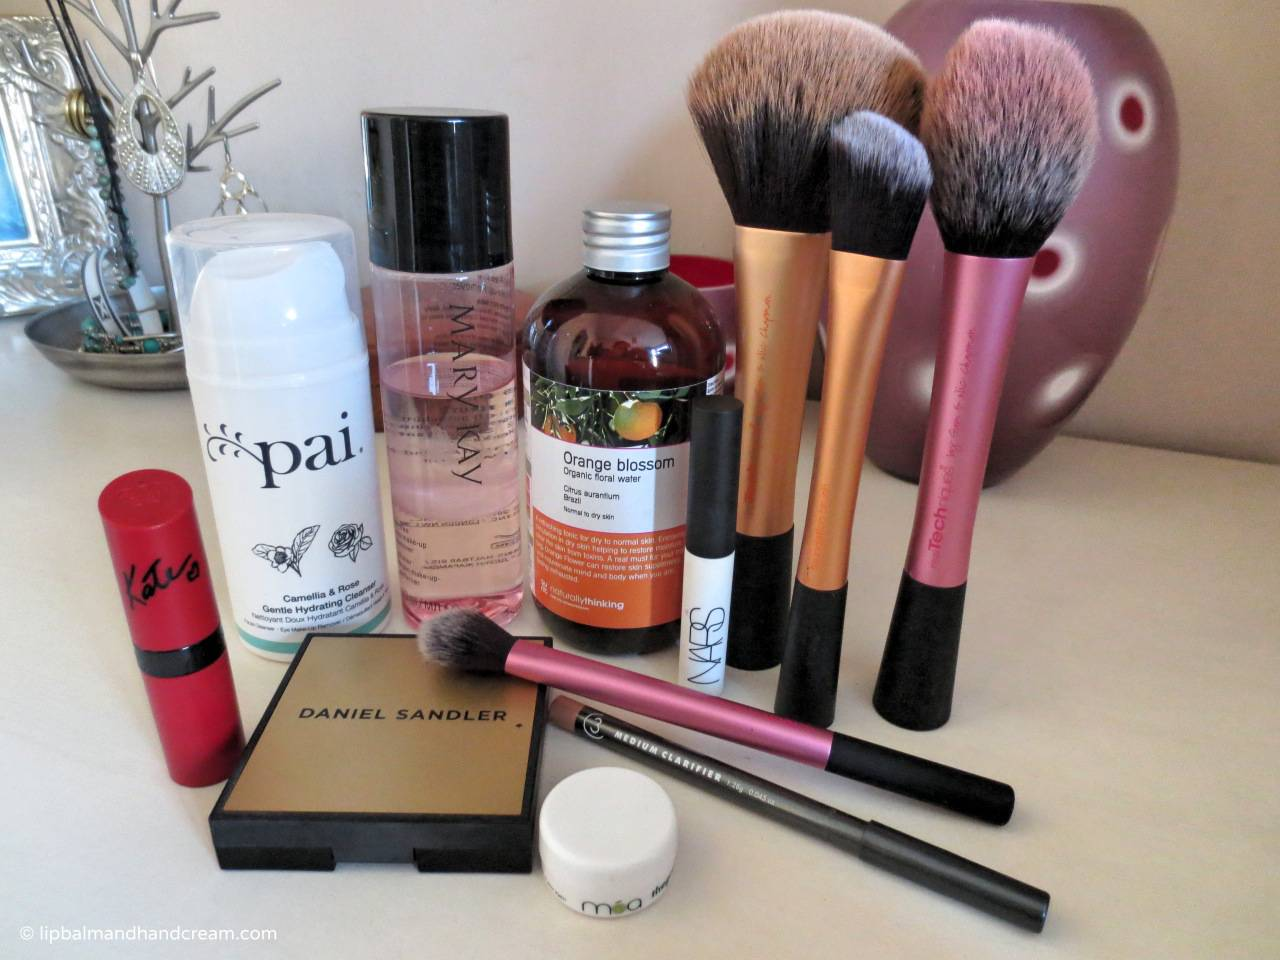 Beauty champions of 2014 - Pai, Mary Kay, Rimmel, Naturally Thinking, Real atechniques, 3 Custom Color, Daniel Sandler and NARS. Aurelia skincare is missing :(